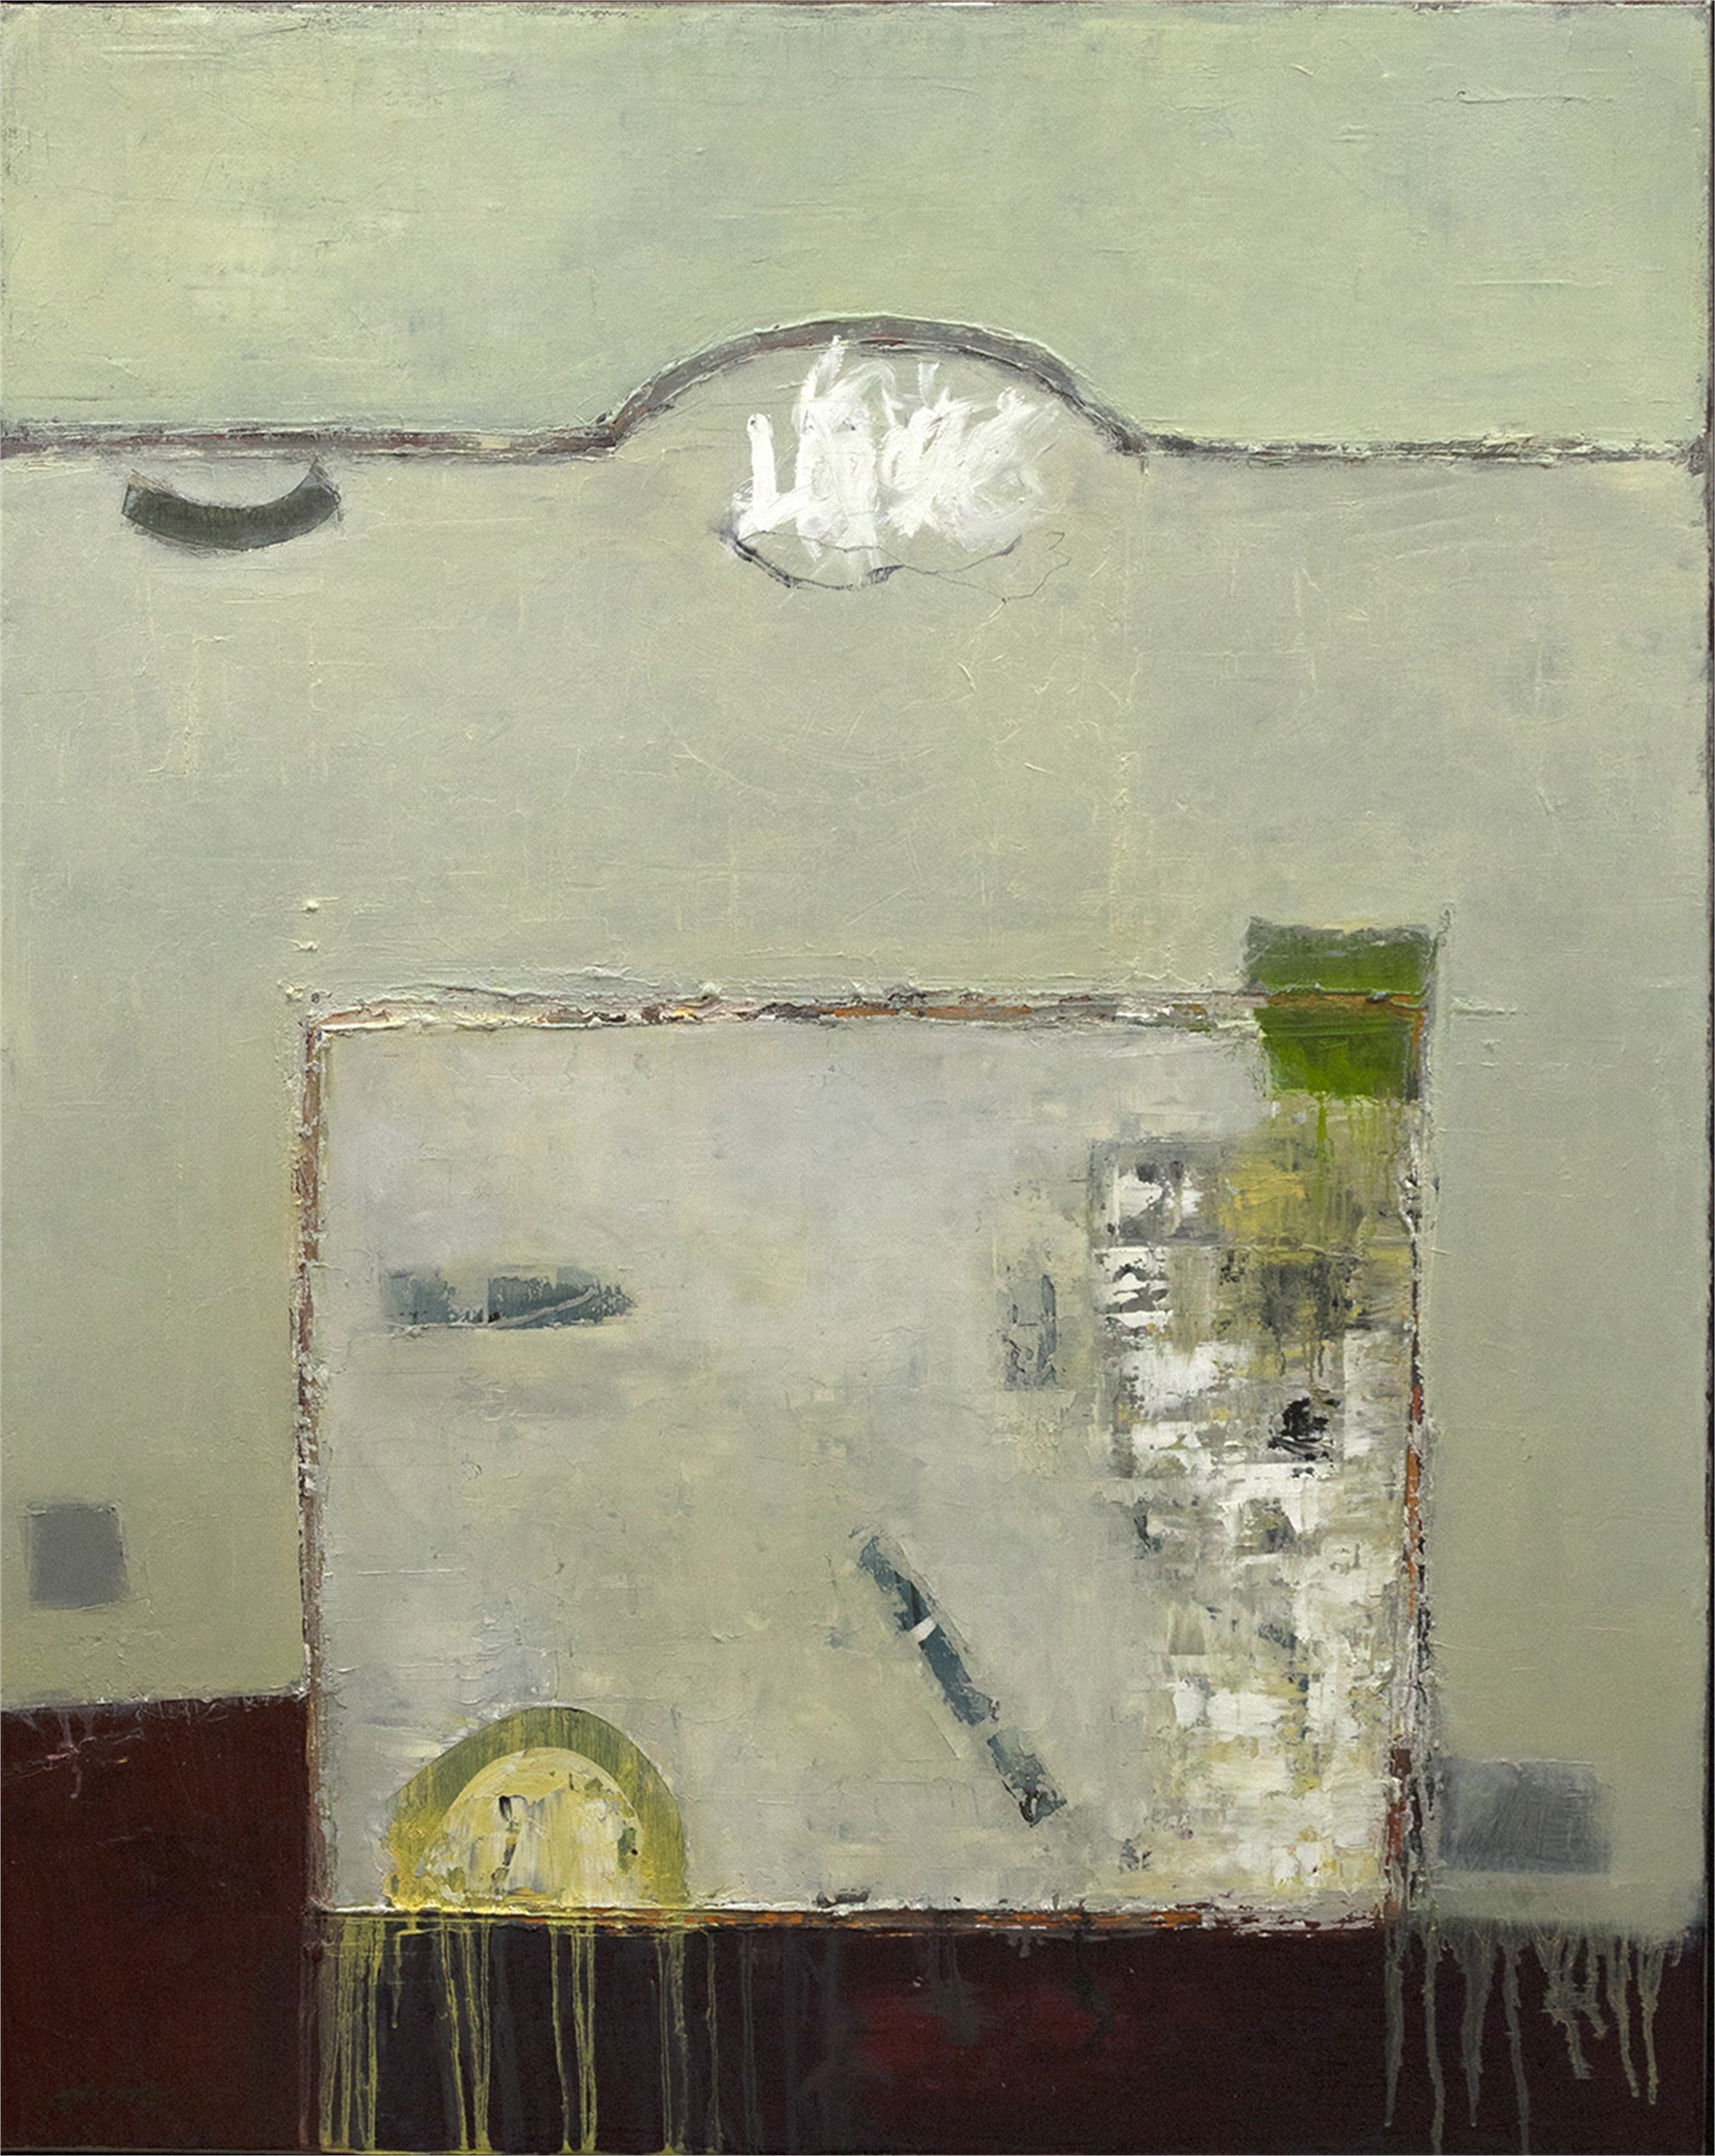 Out of the Box by John McCaw